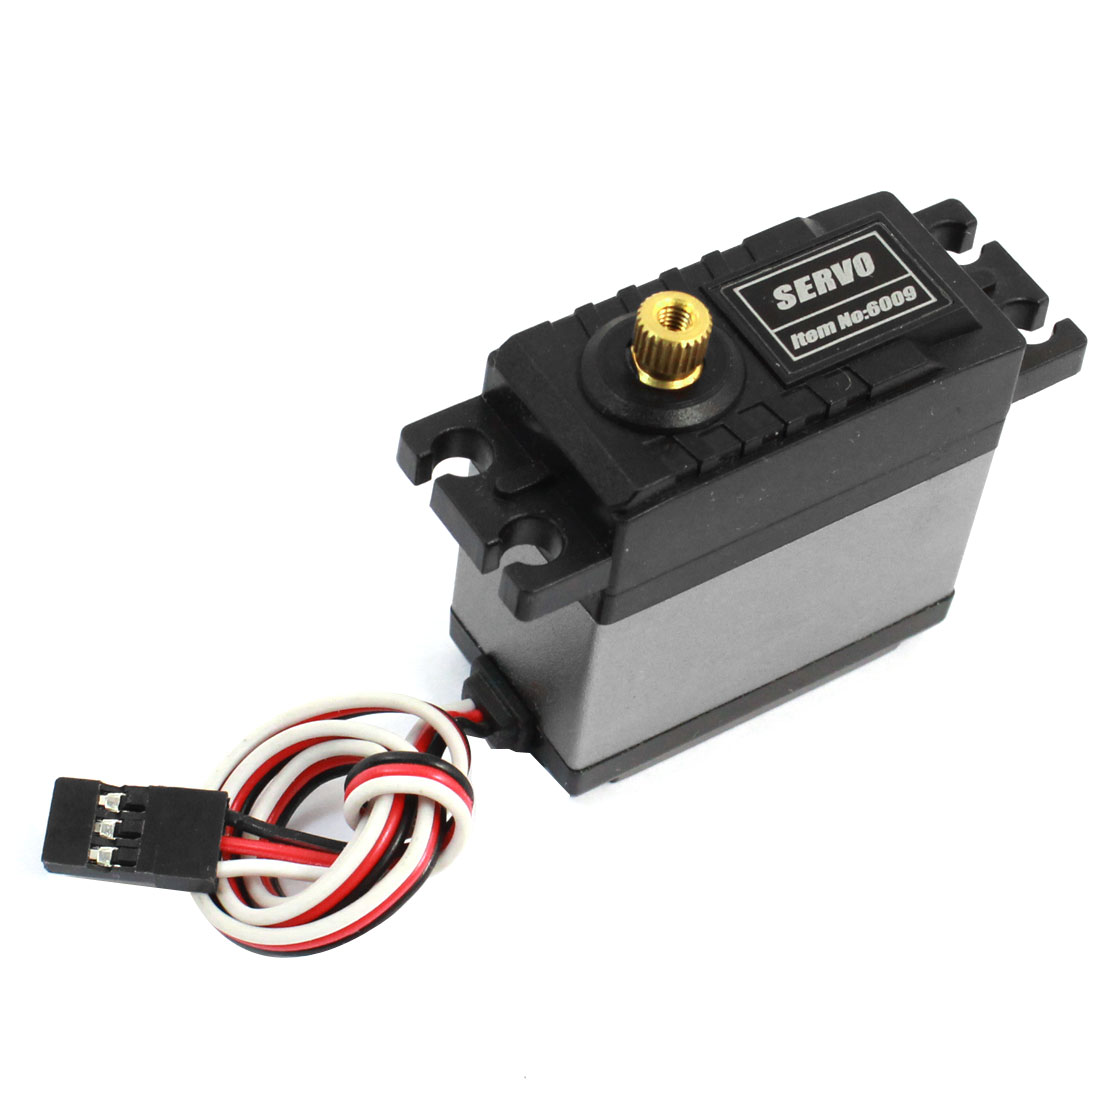 6009 High Torque Metal Geared Steering Servo 9kg for 1/8 1/10 RC Nitro Car